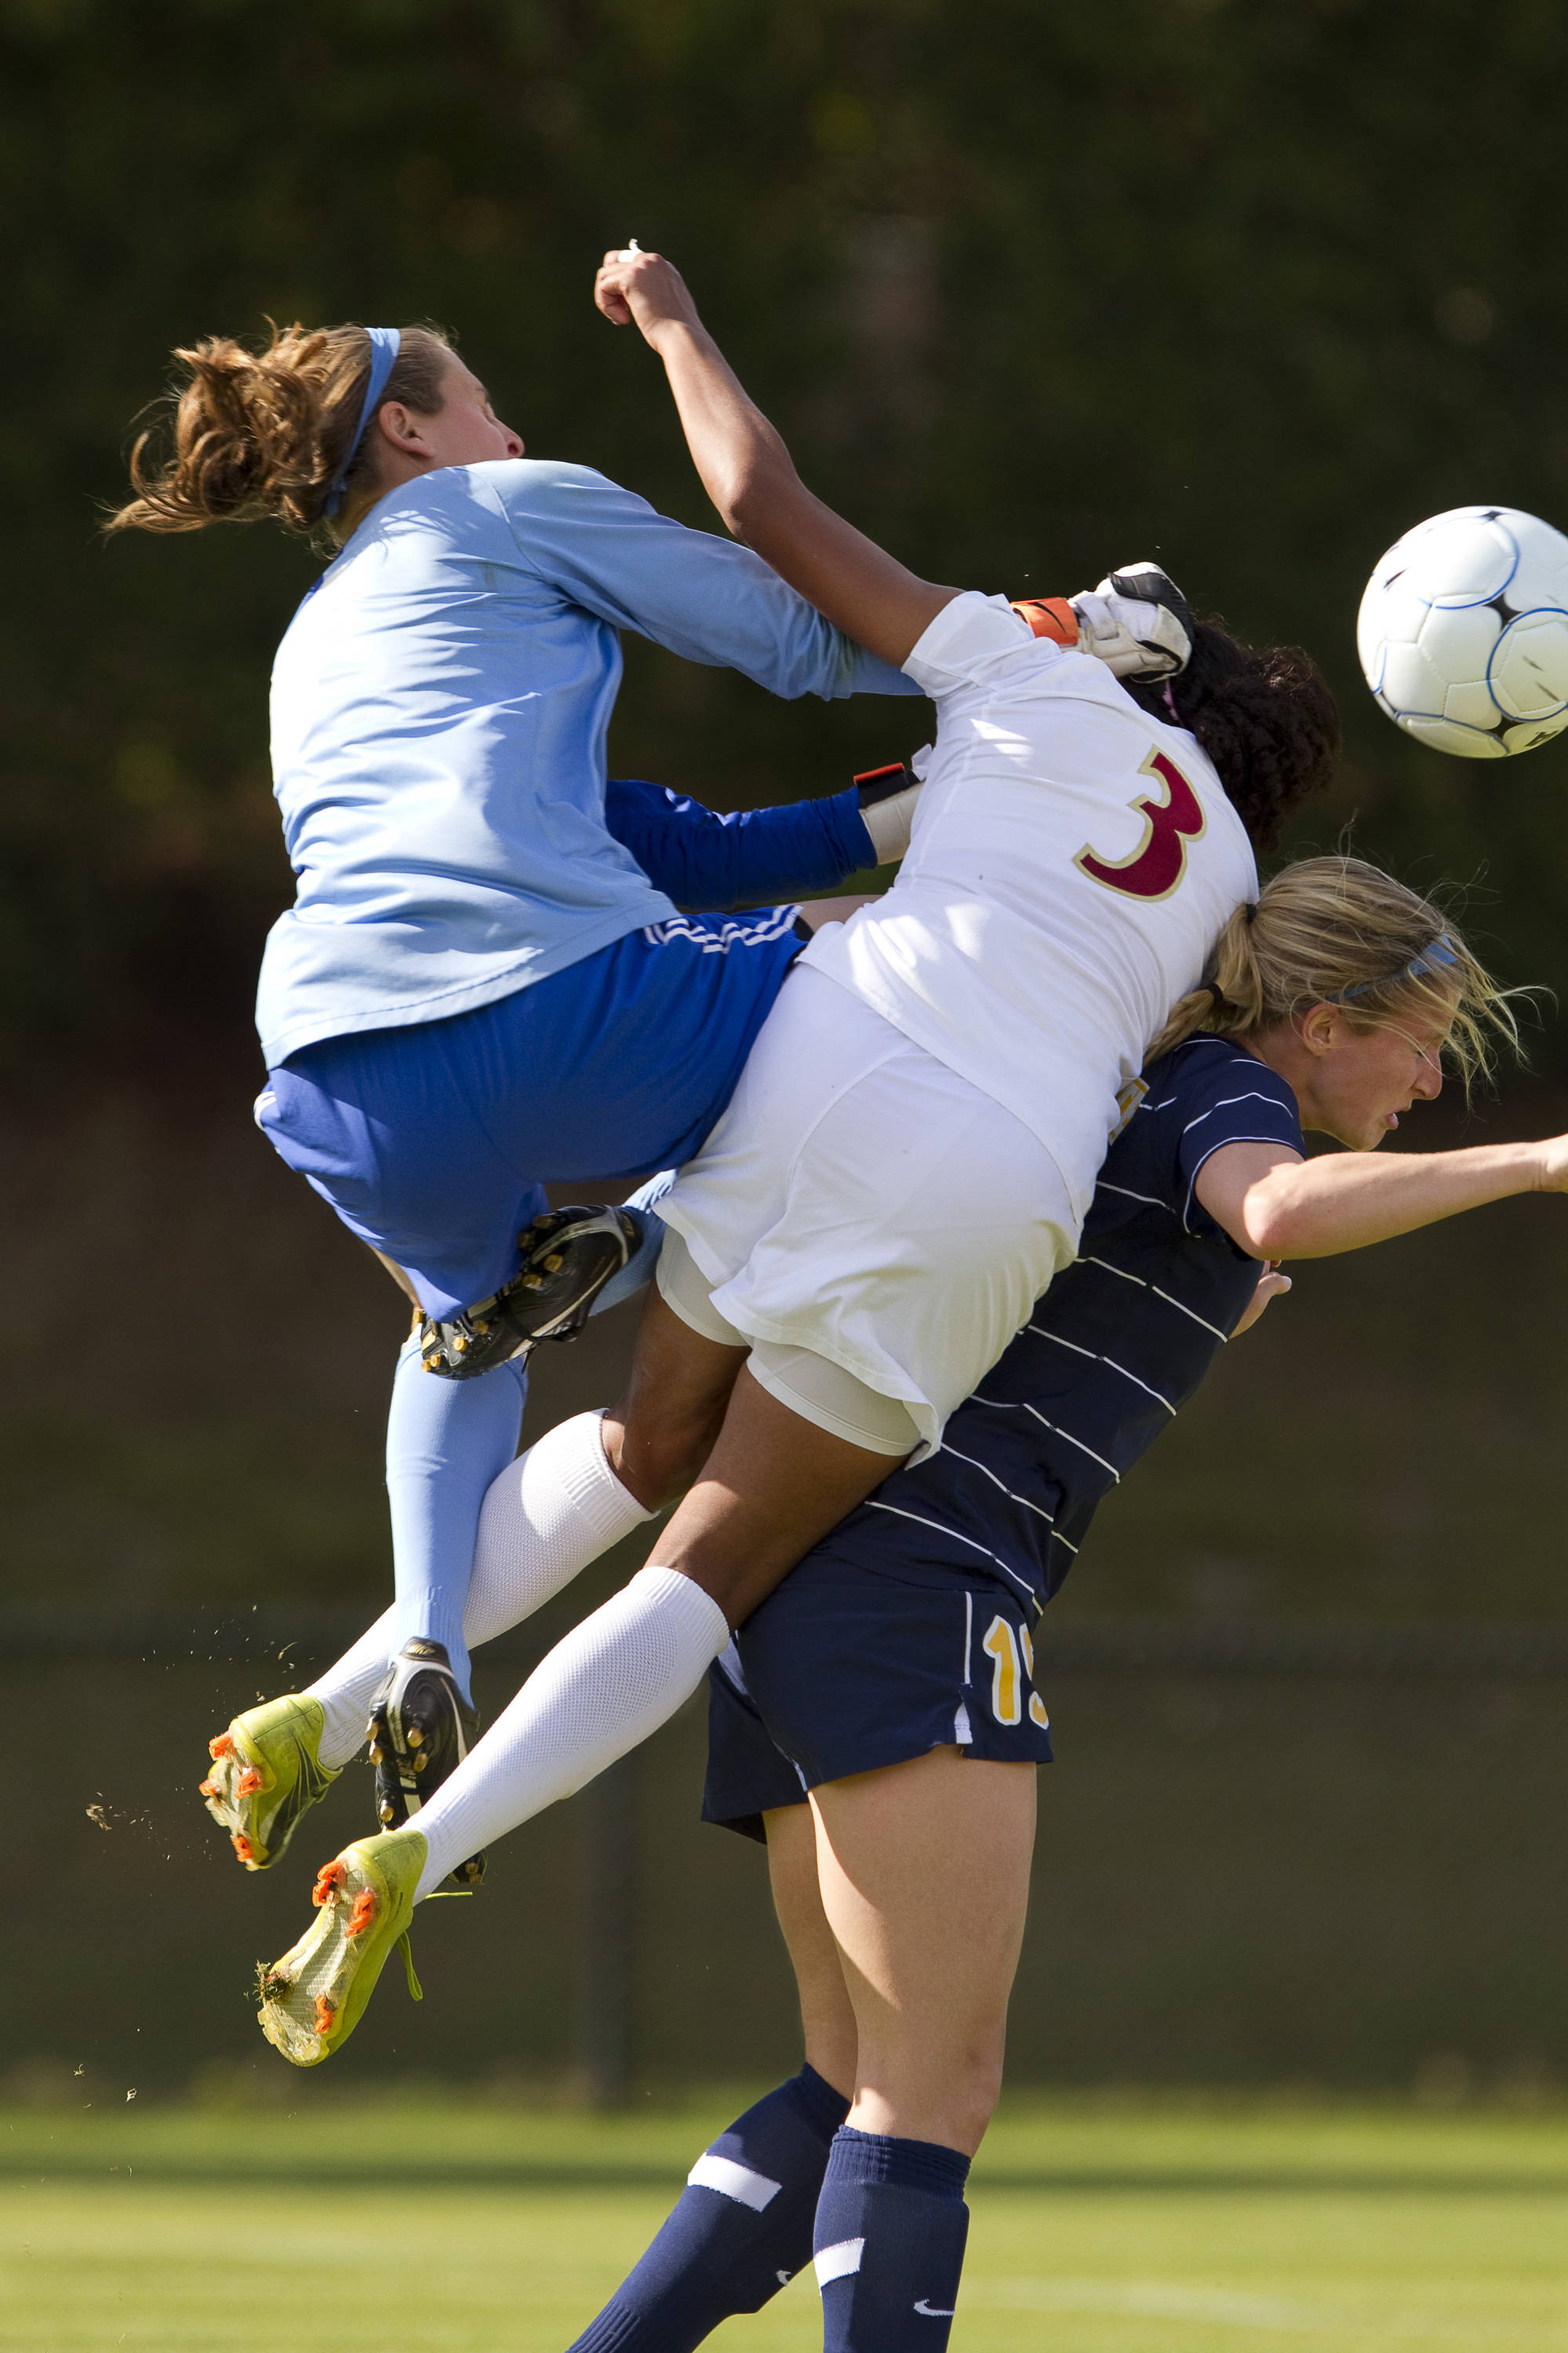 Casey Short (3) challenges Marquette's keeper for the ball.